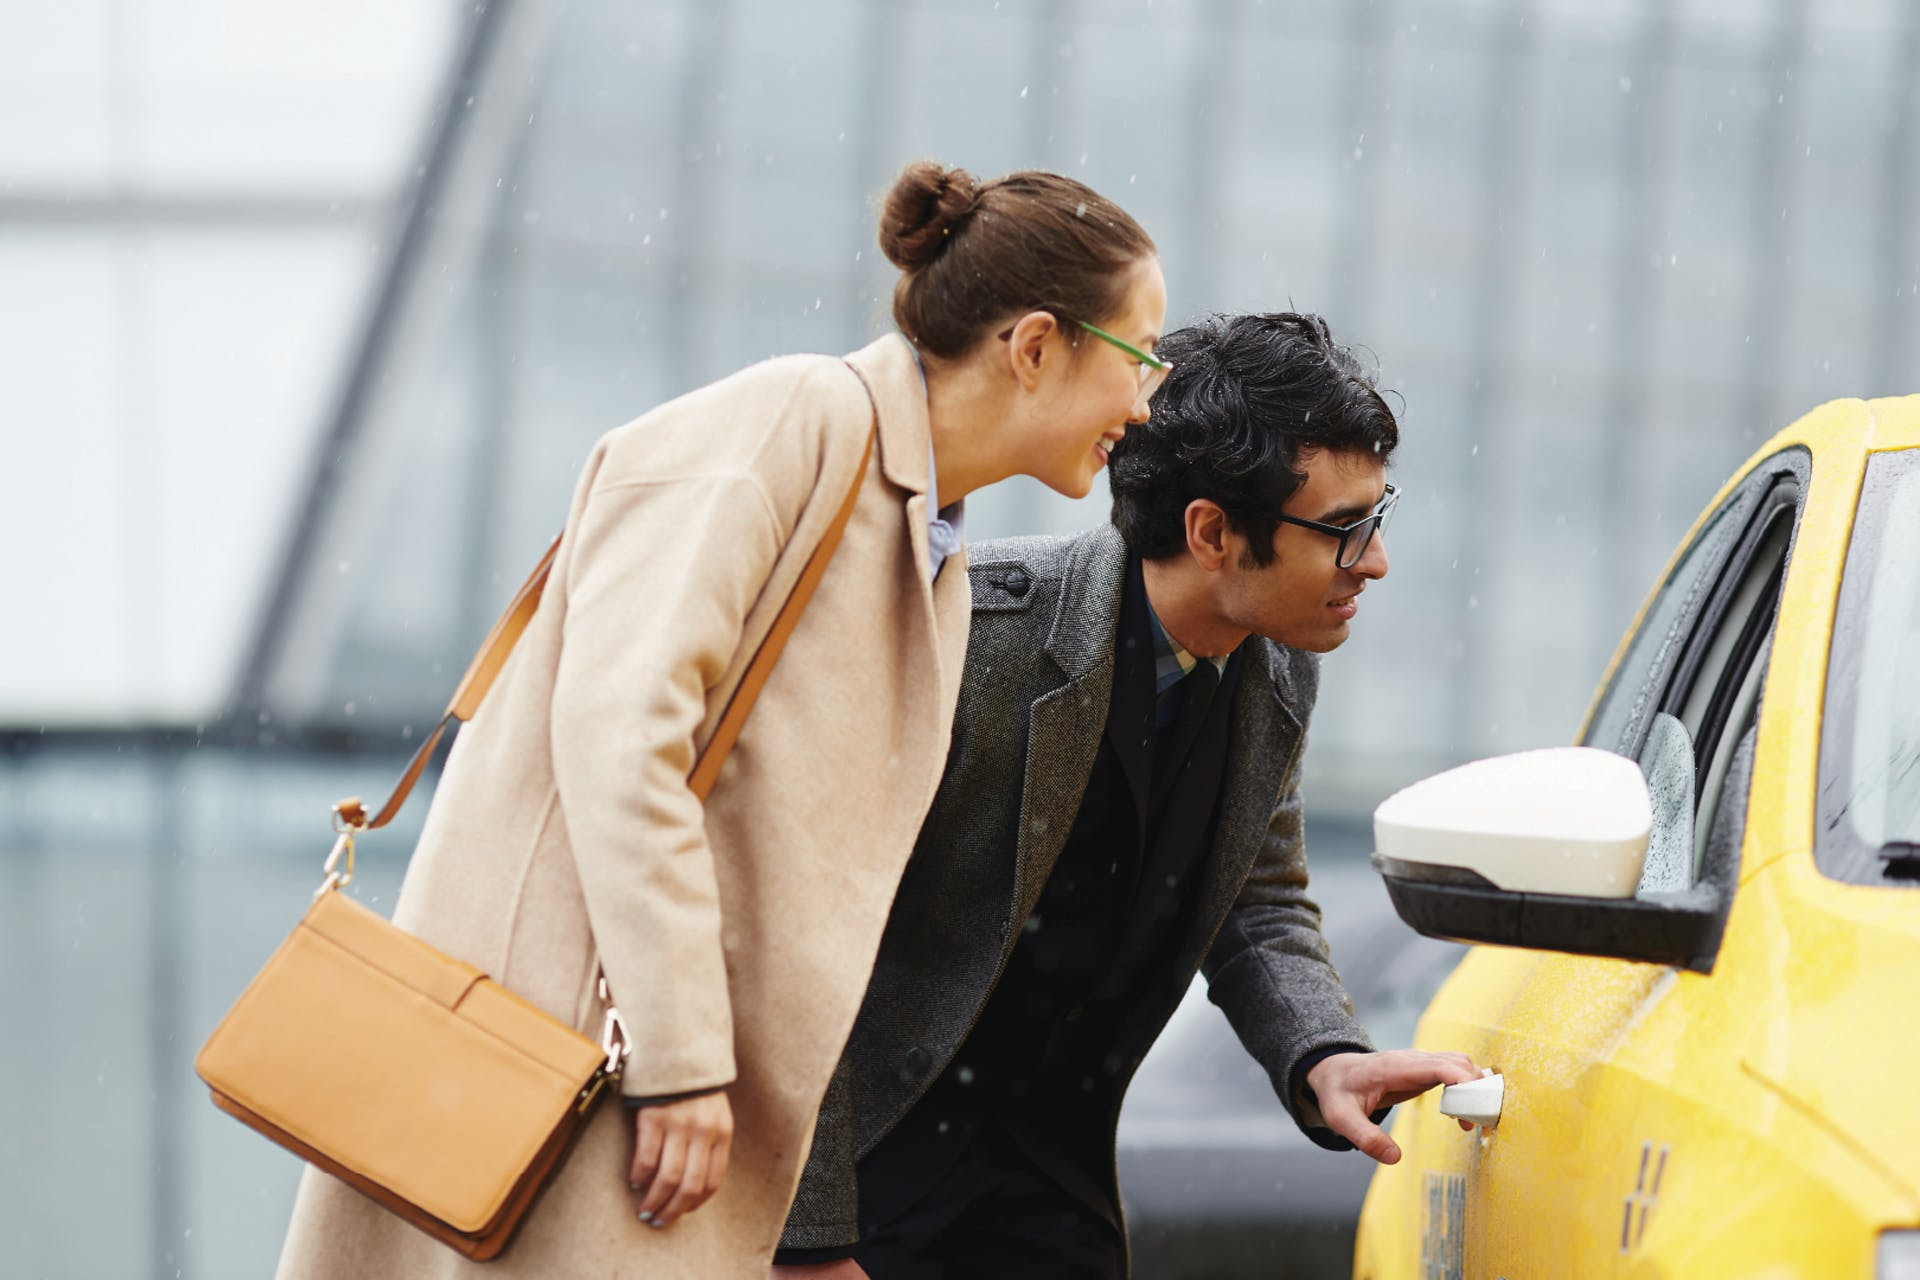 Two businesspeople hailing a cab or ride-sharing service